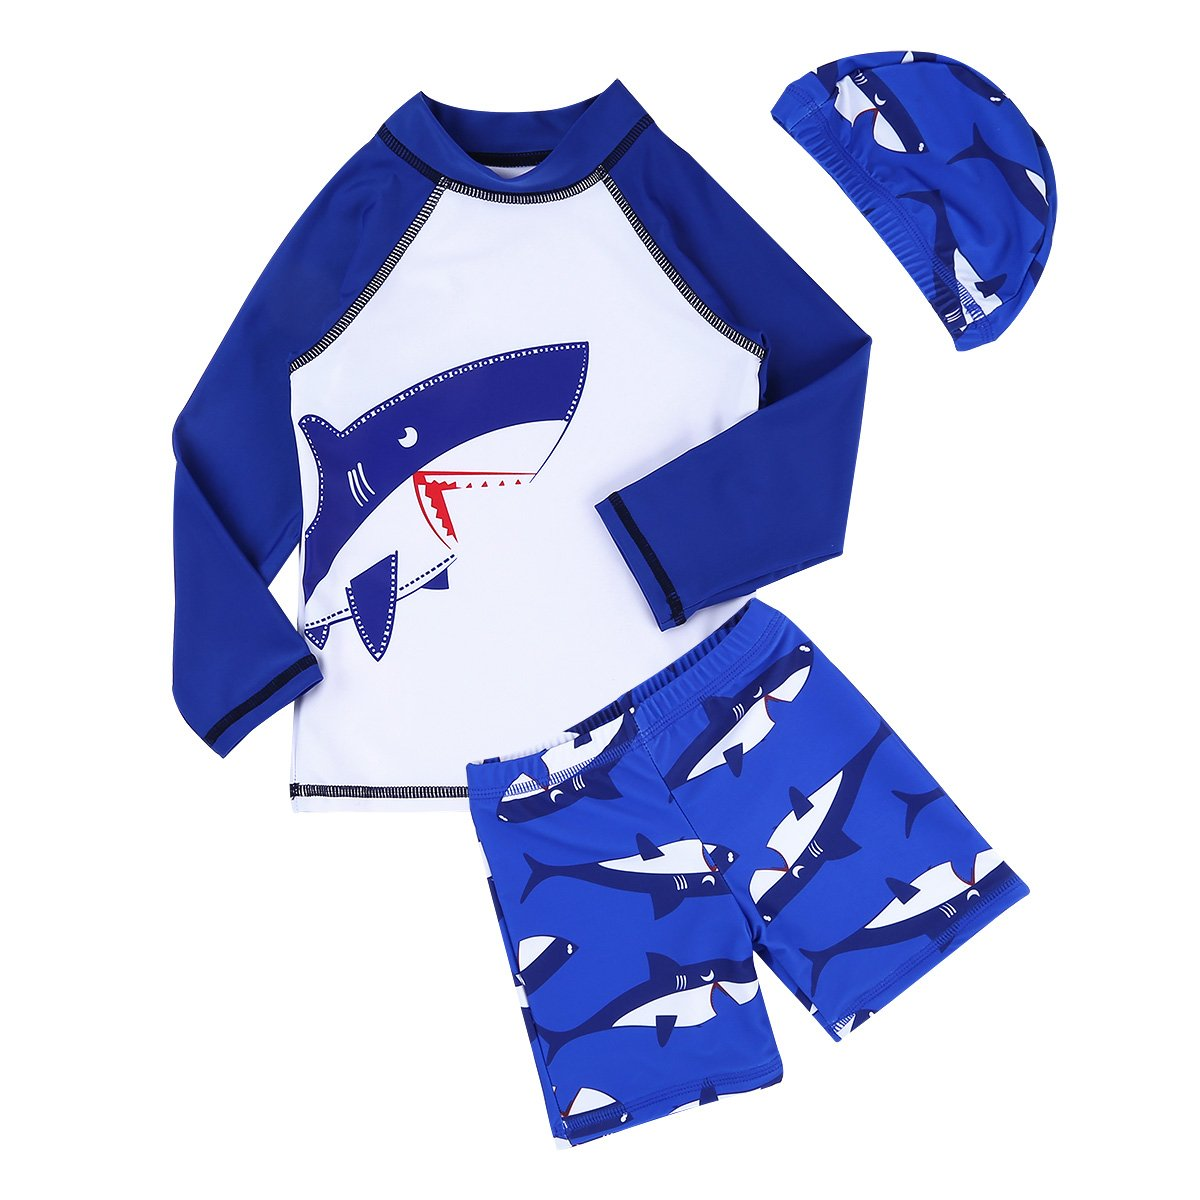 6c4ac26792d5a Freebily Kids Boys Long Sleeve Rash Guard Swimsuit Shark Top Shirt with  Board Shorts Swimming Cap Set: Amazon.co.uk: Sports & Outdoors